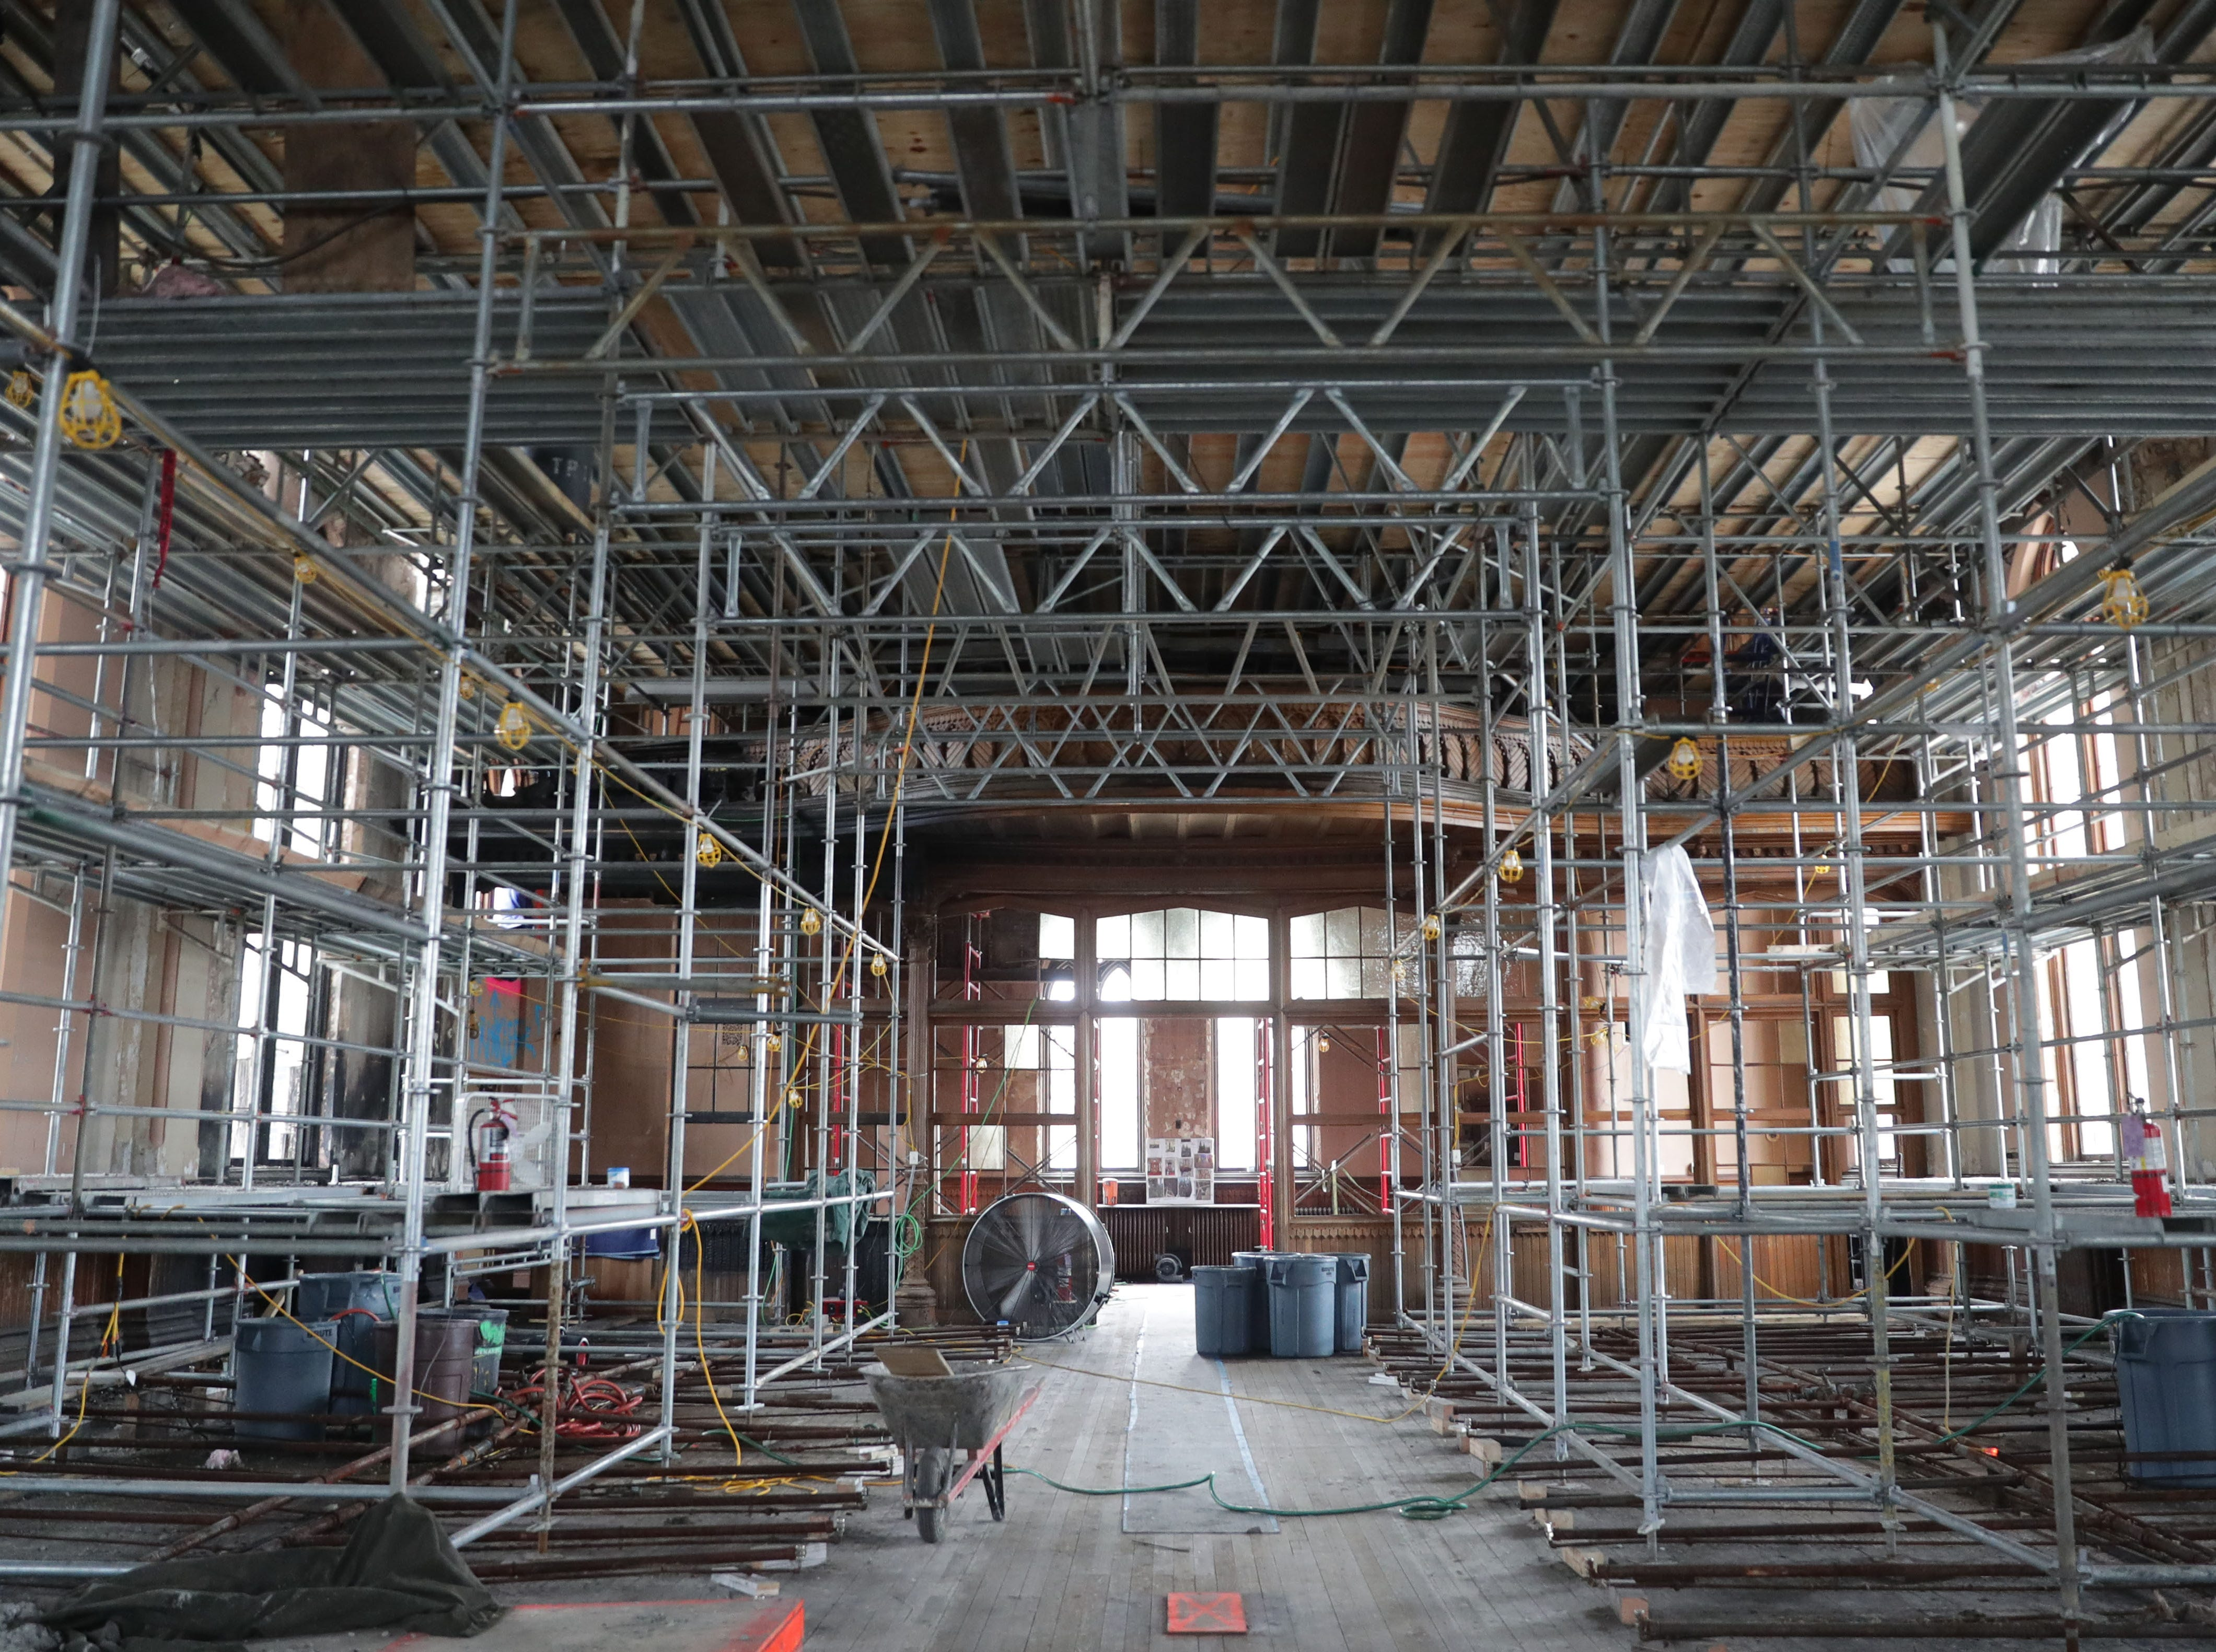 Scaffolding is in place in the chapel area looking towards the entrance.